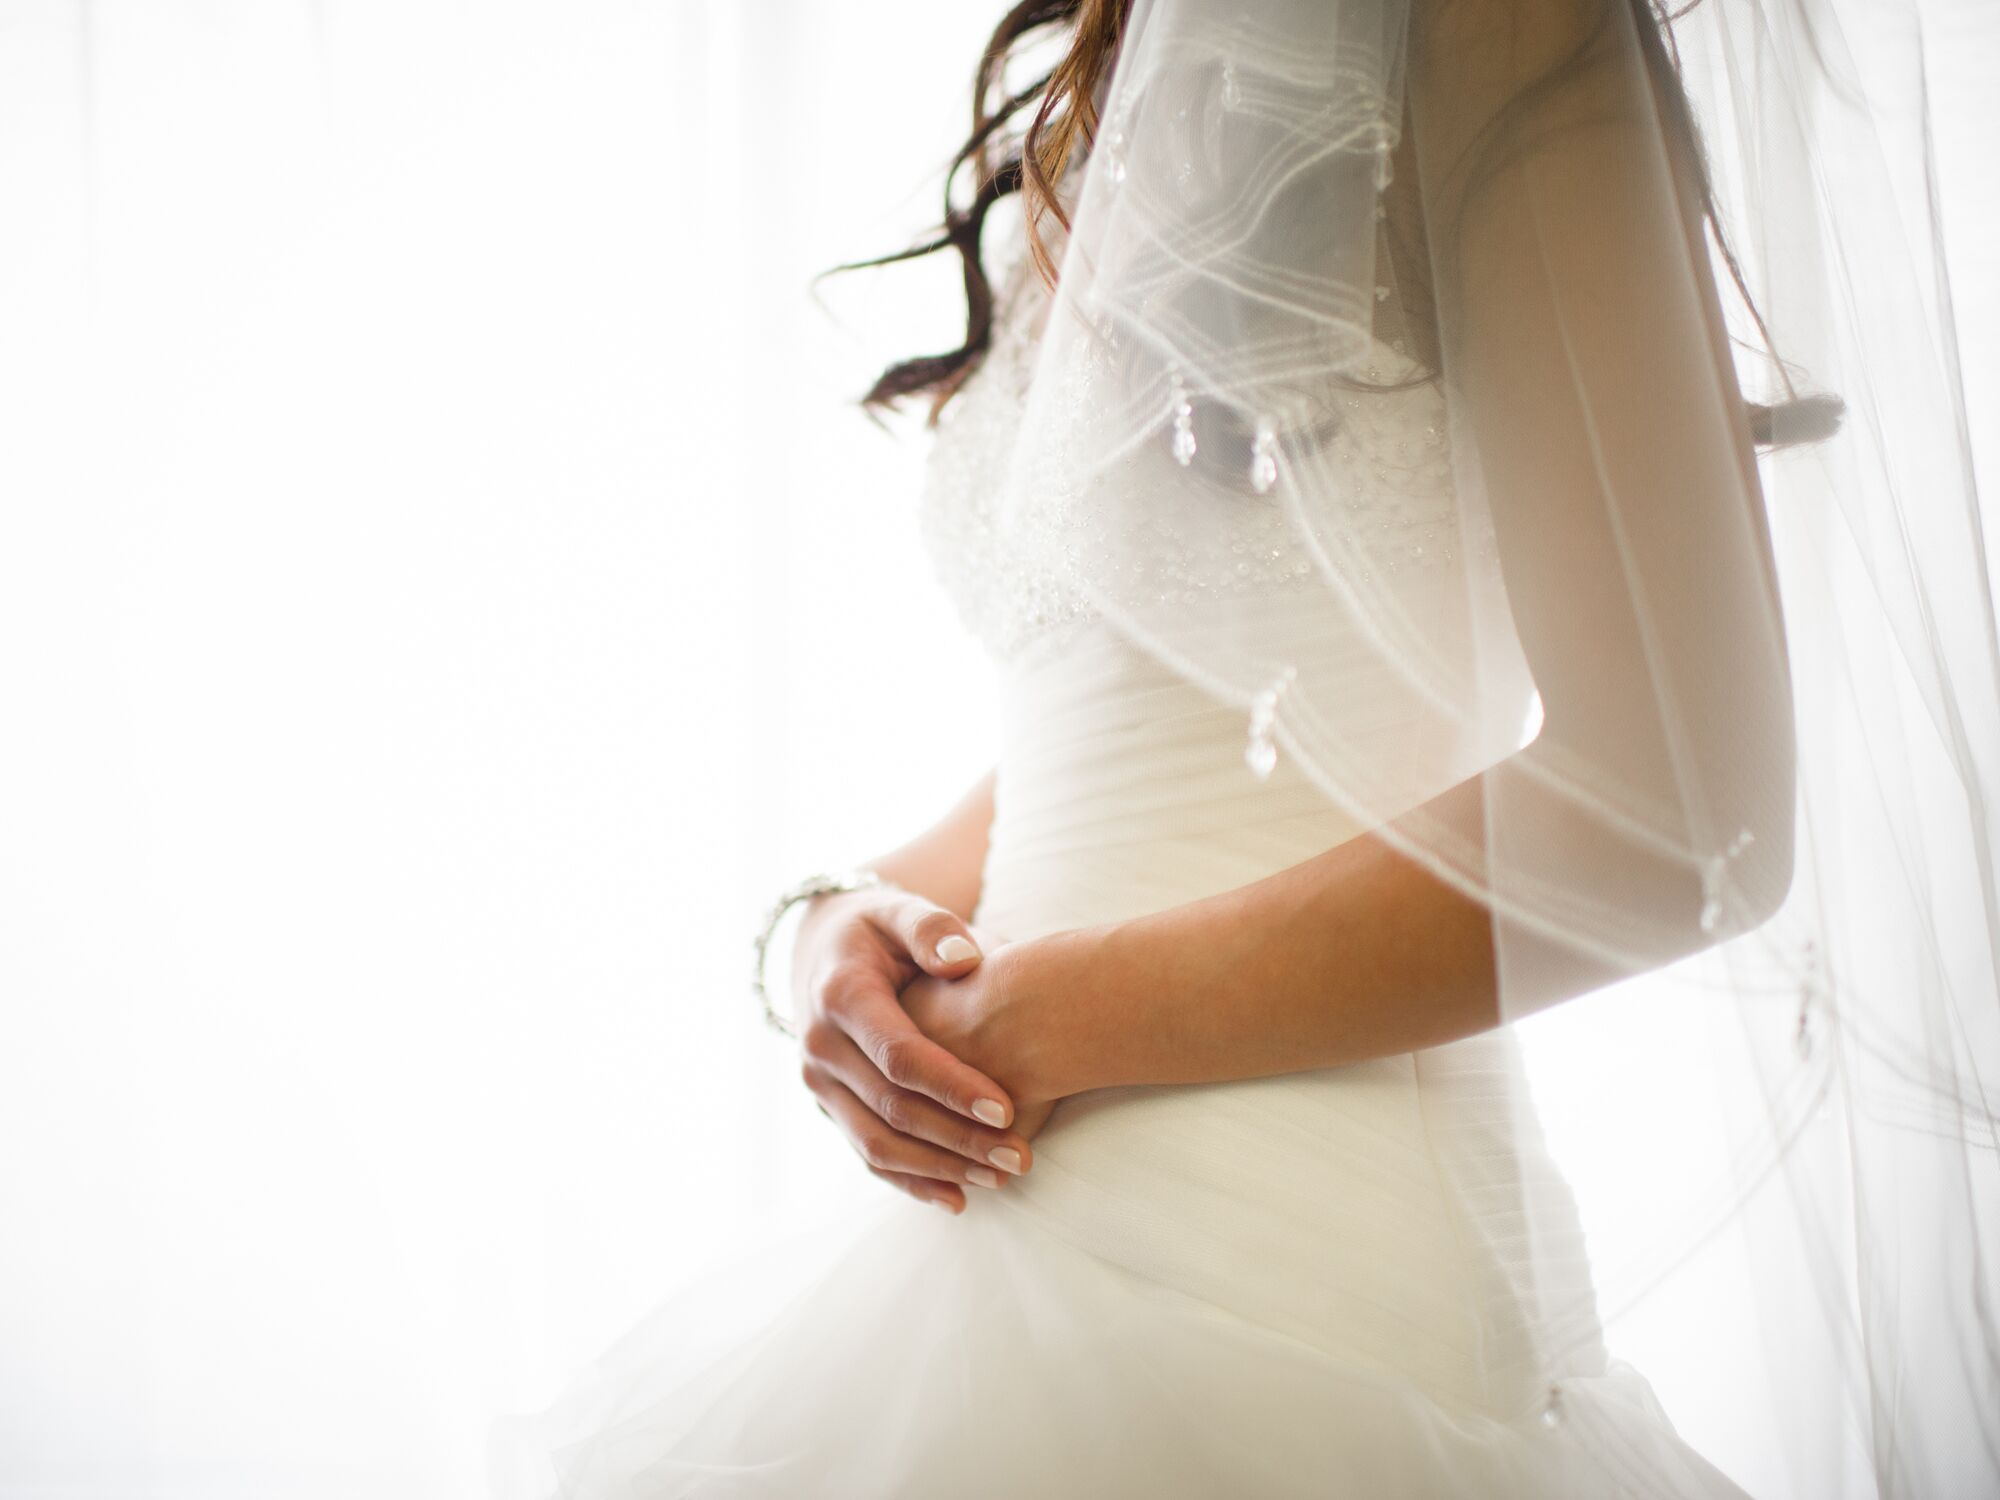 Bride's wedding dress and veil